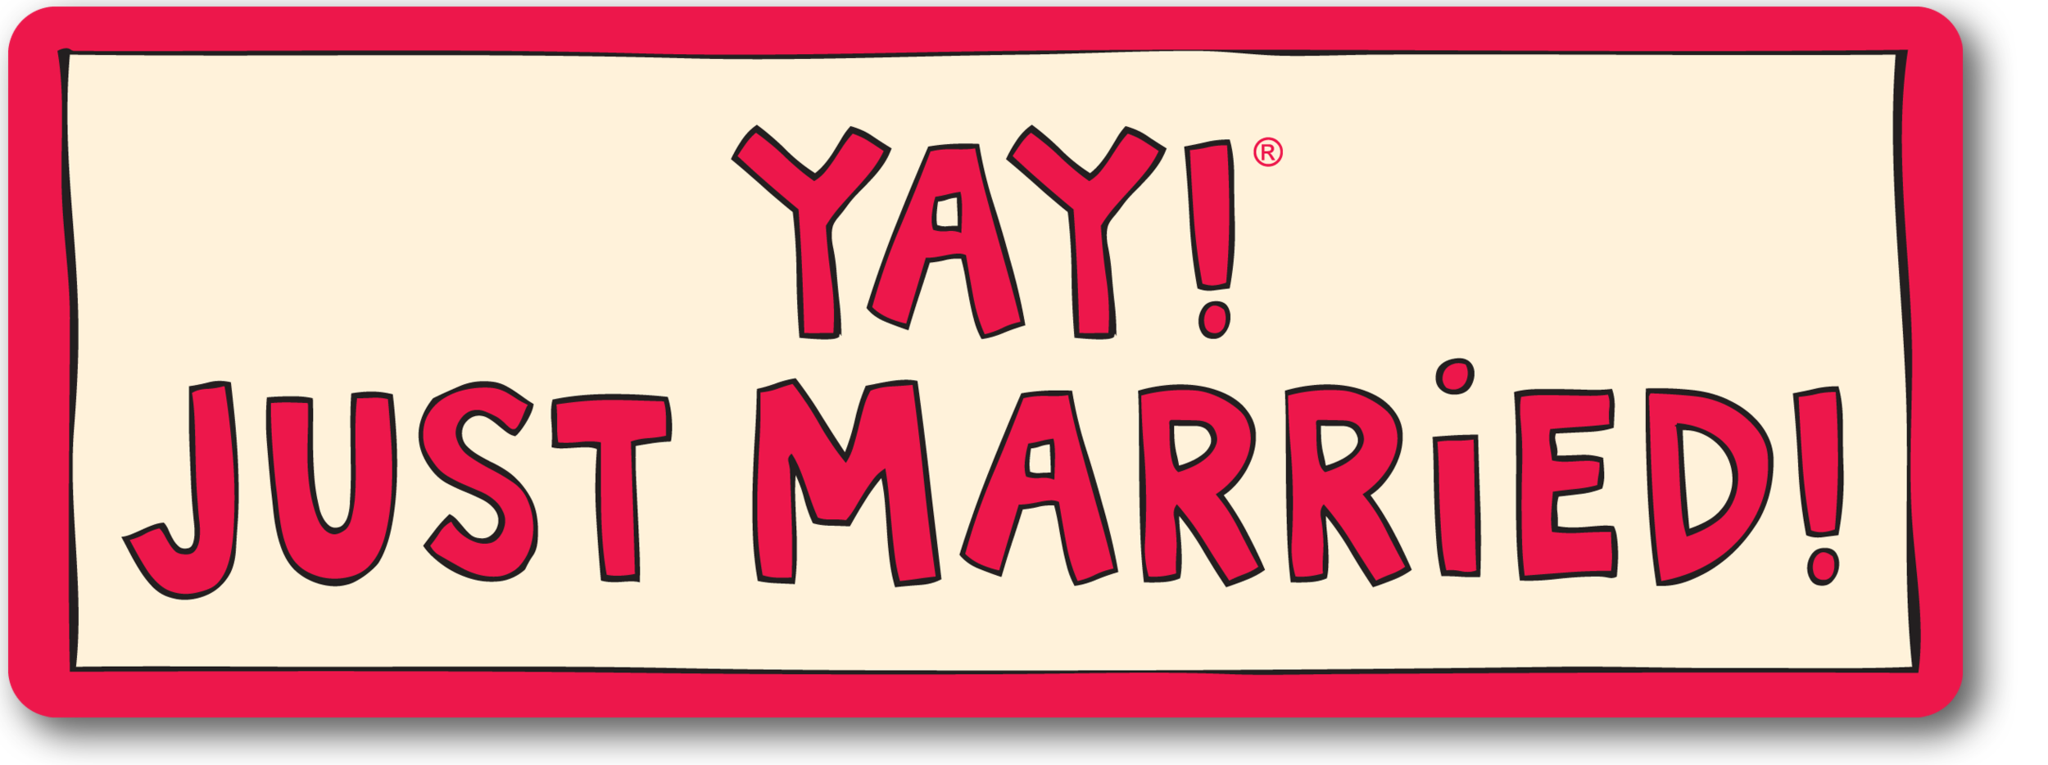 svg library download Just married magnet . Yay clipart happily